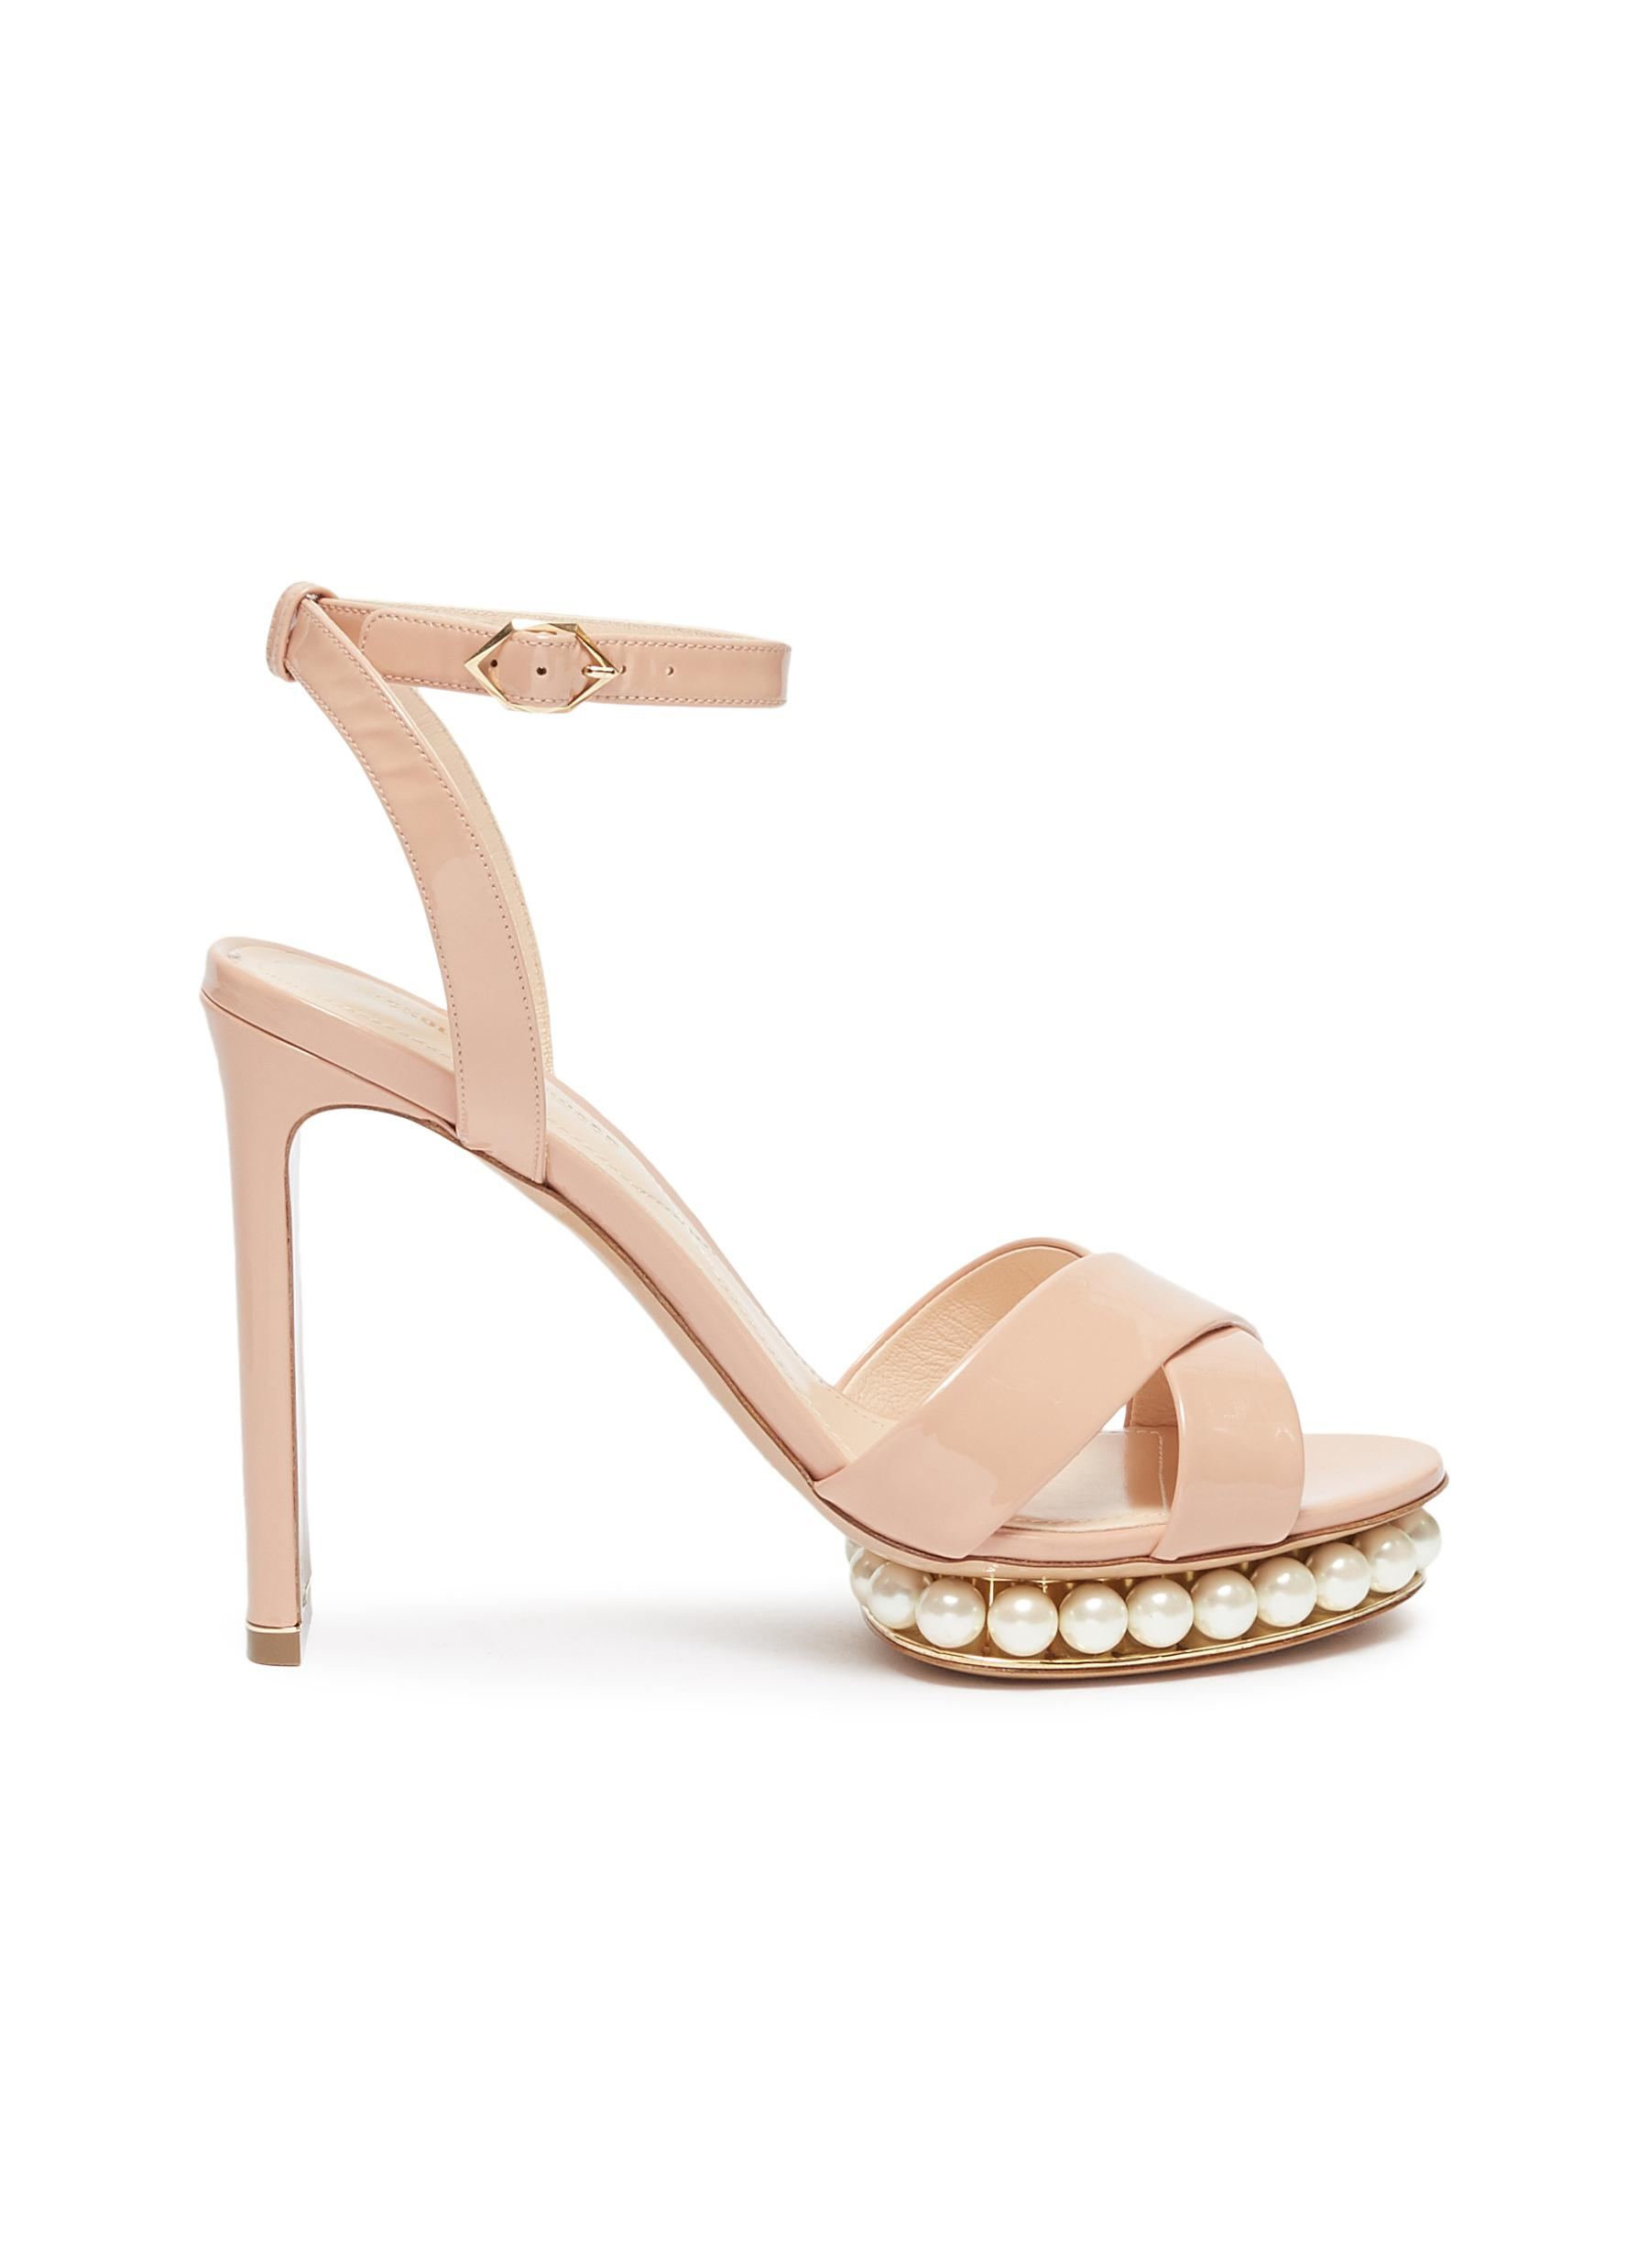 Casati faux pearl platform ankle strap patent leather sandals by Nicholas Kirkwood